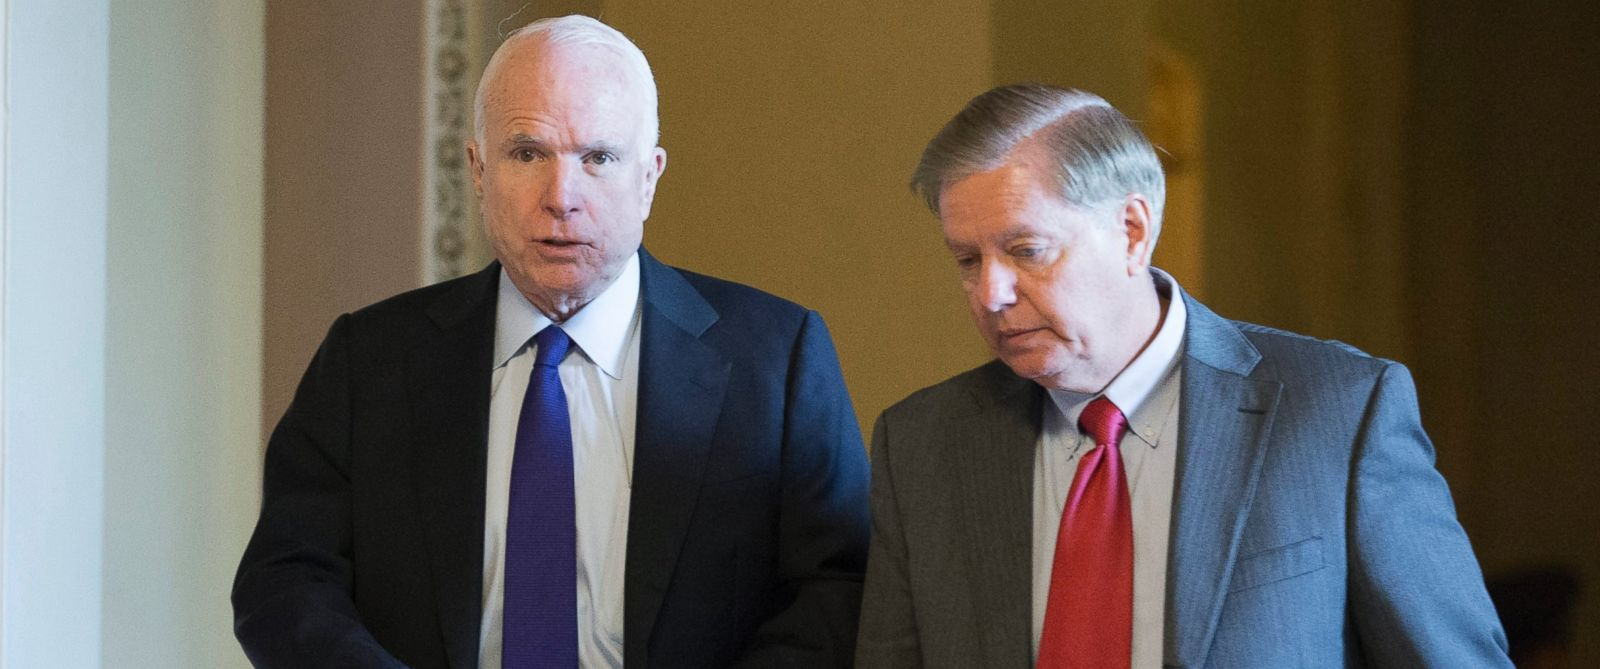 PHOTO: Sen. John McCain (L) and Sen. Lindsey Graham (R) walk near the Senate chamber following Senate Republican elections on Capitol Hill in Washington, Nov. 16, 2016.